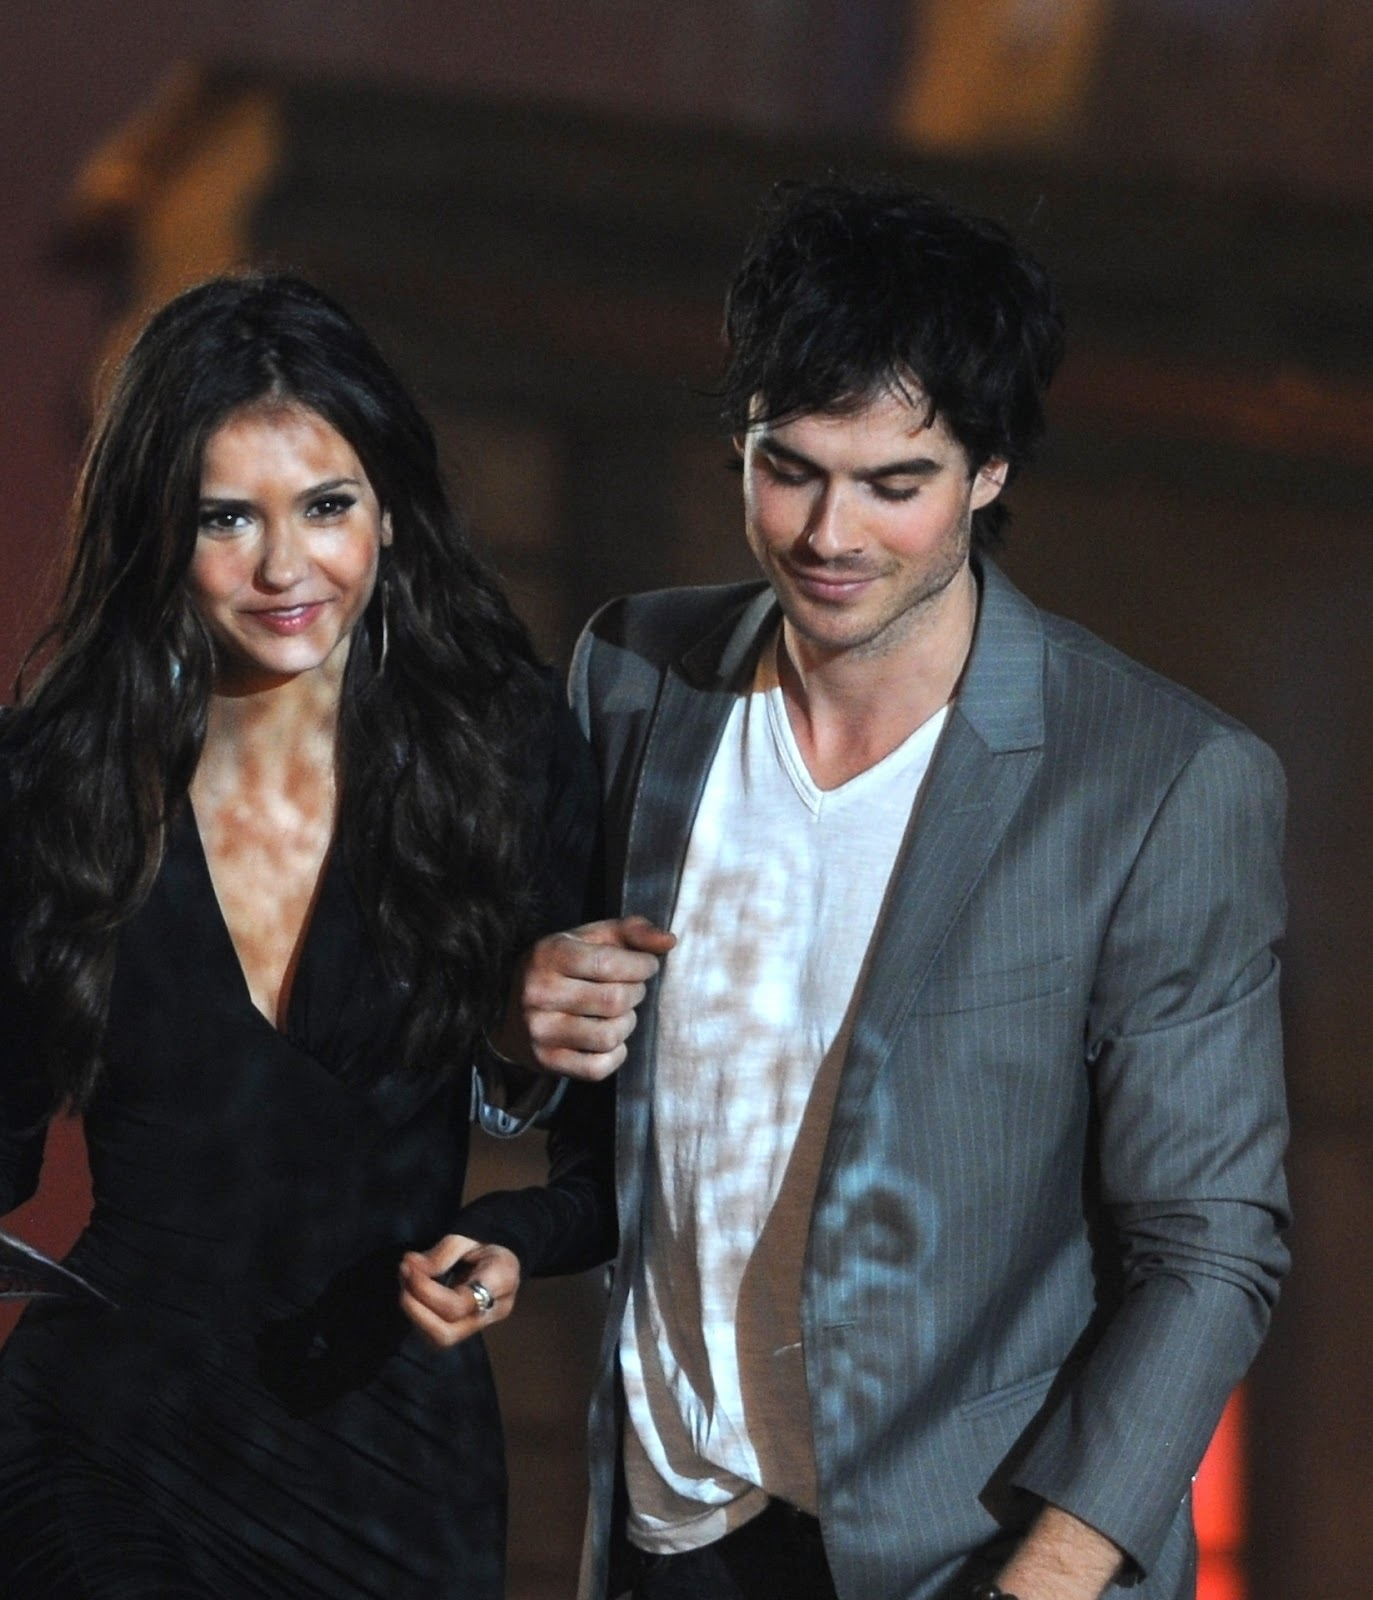 Ian-Nina-Scream-Awards-2010-HQ-ian-somerhalder-and-nina-dobrev ...